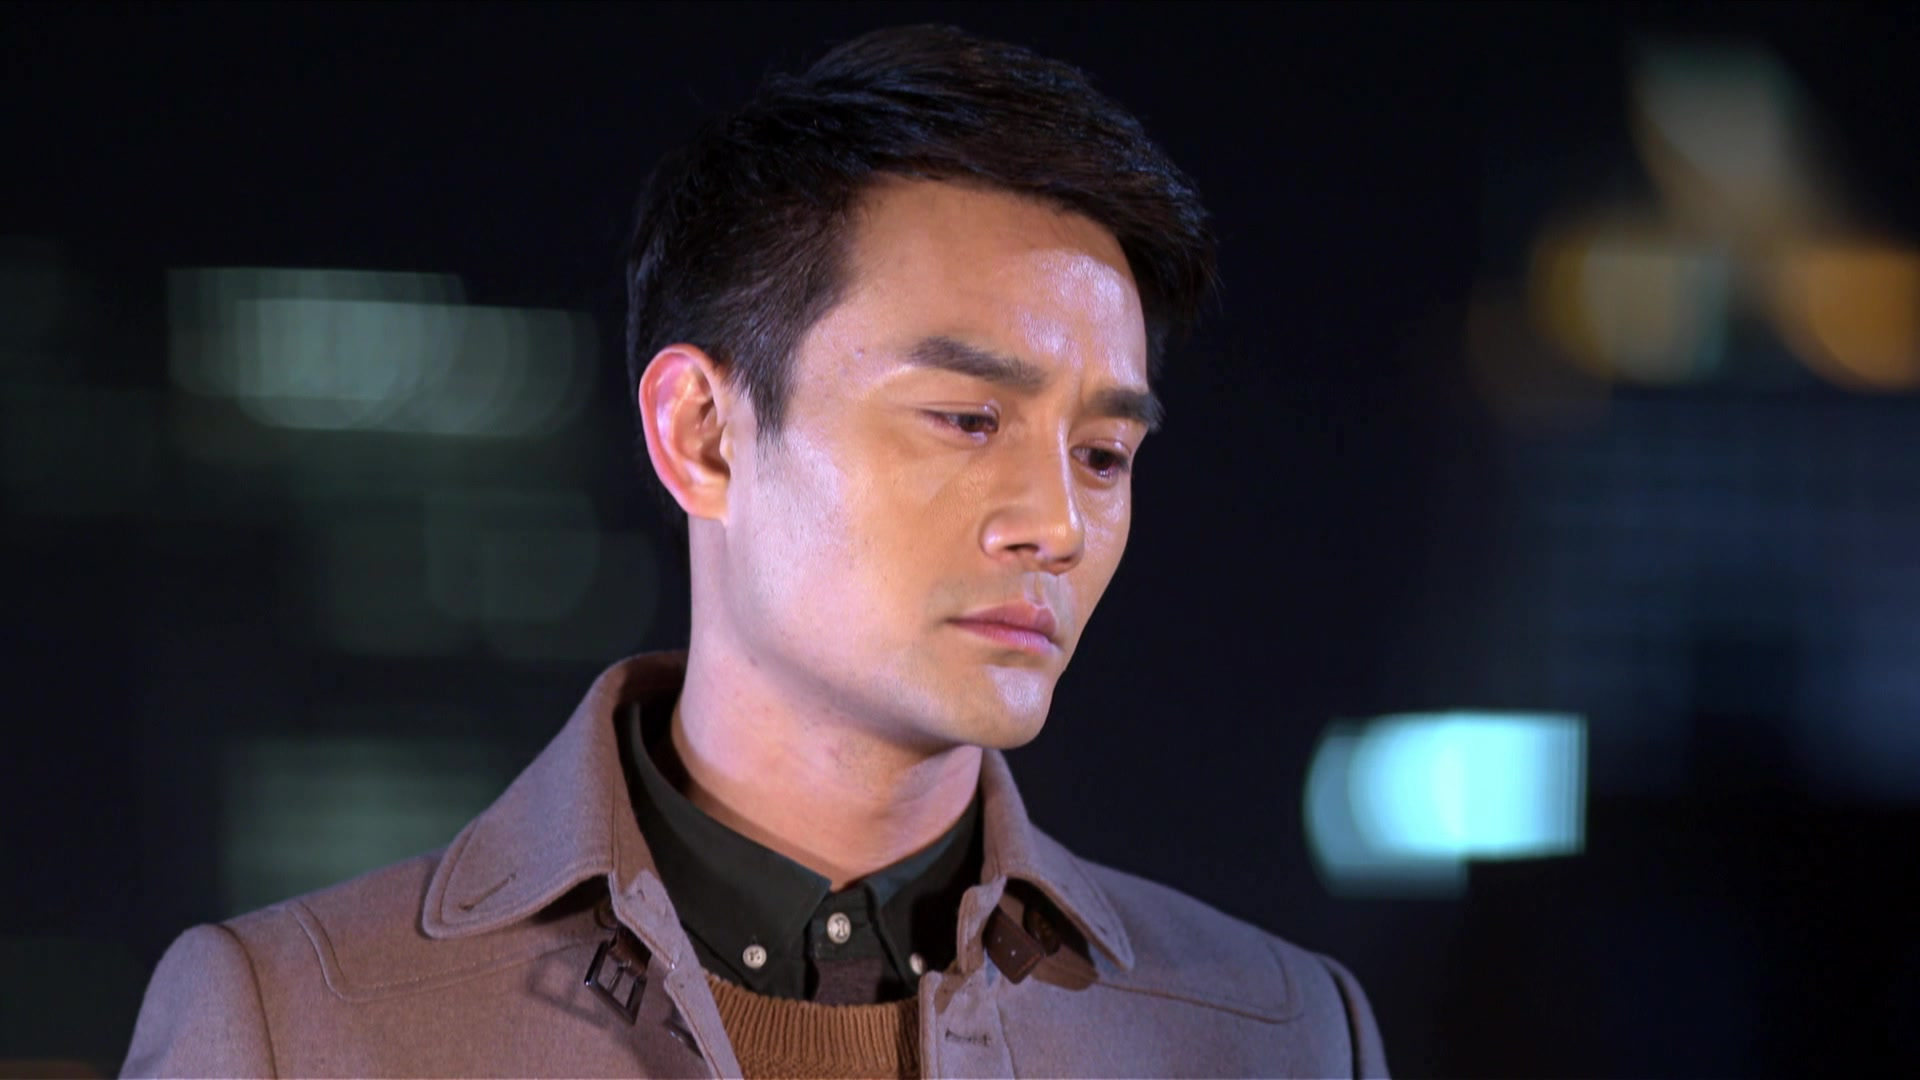 Waiting For You Episode 9